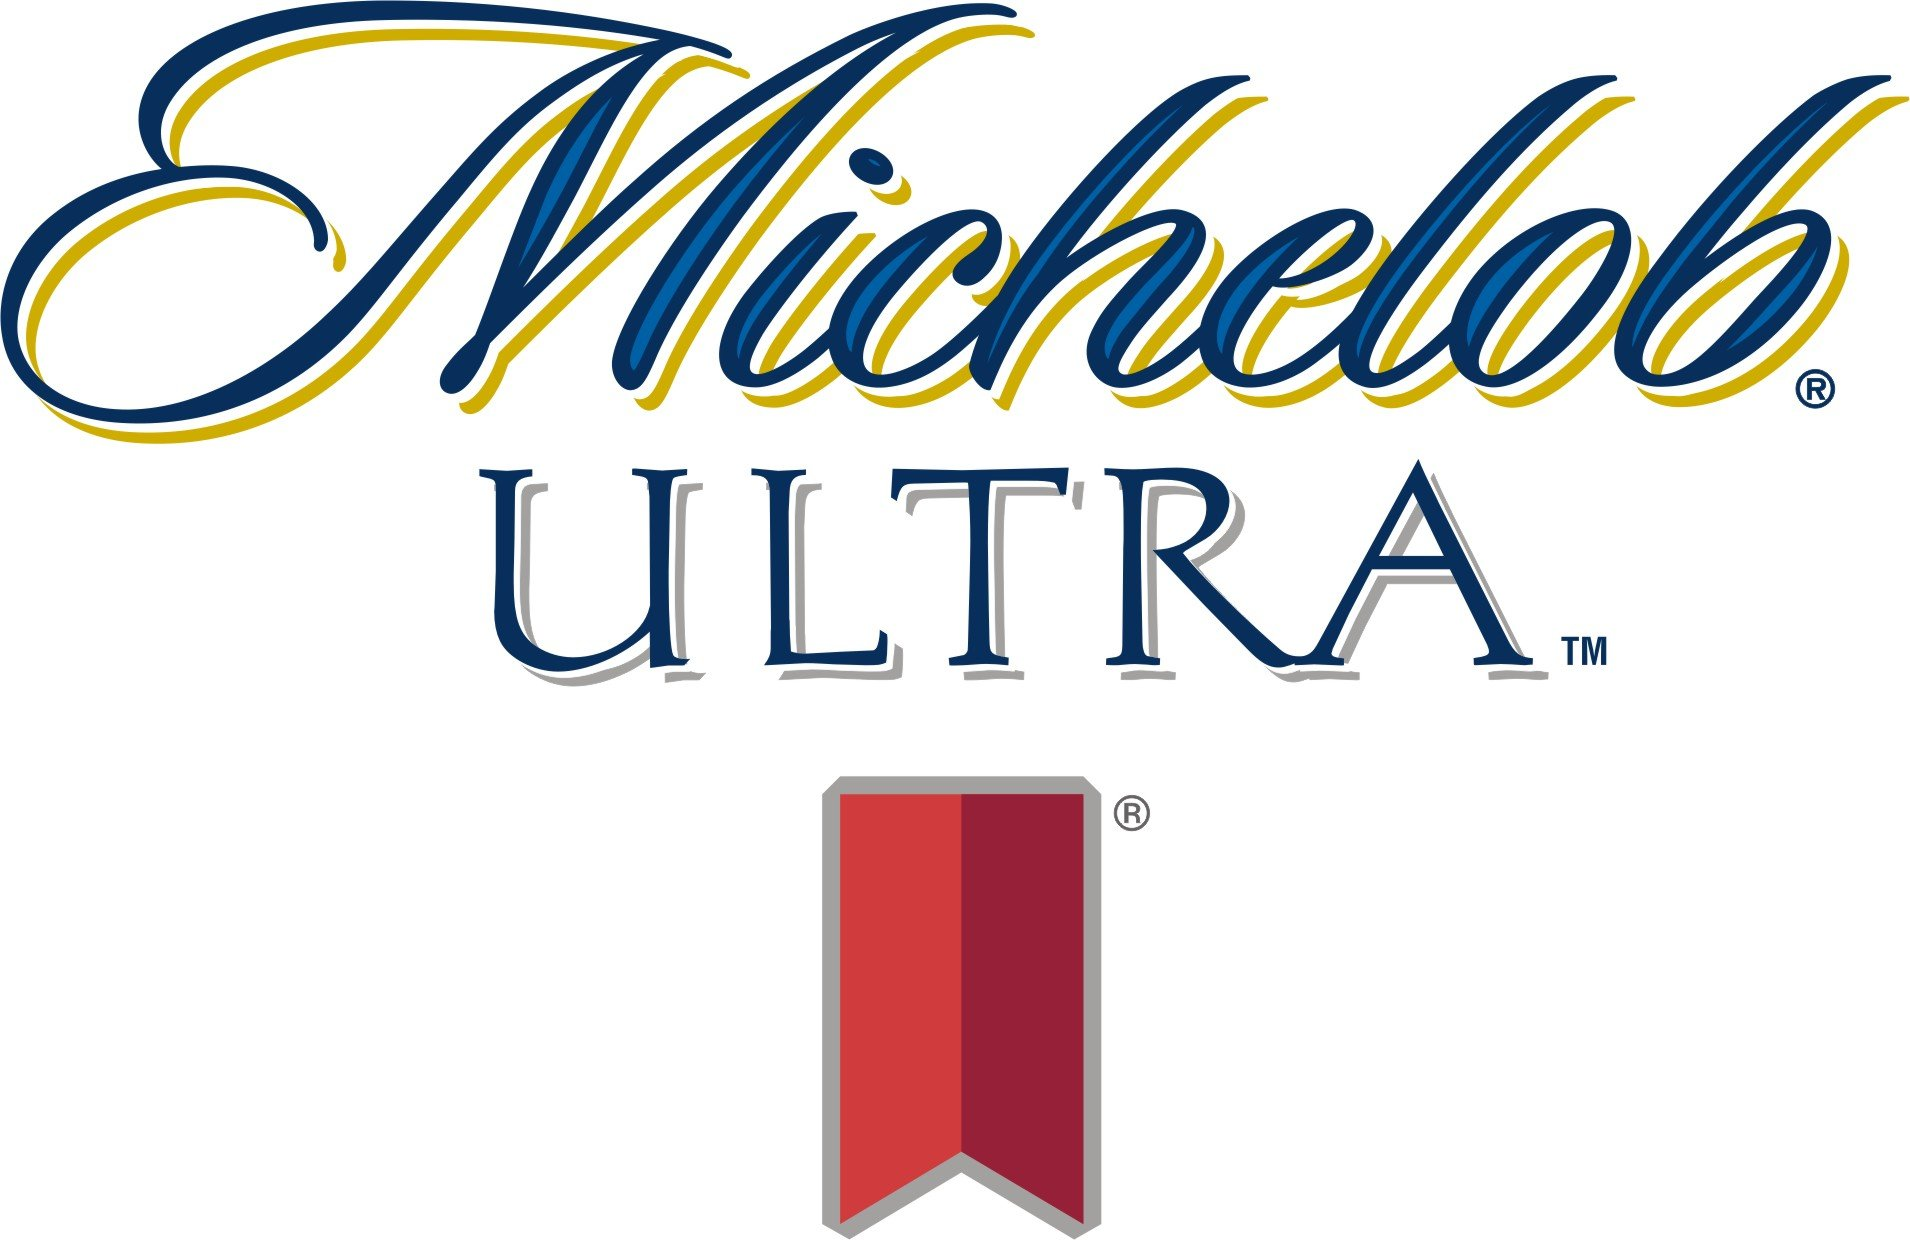 michelob ultra logo high resolution desktop 1910x1240 wallpaper 224555 1910x1240